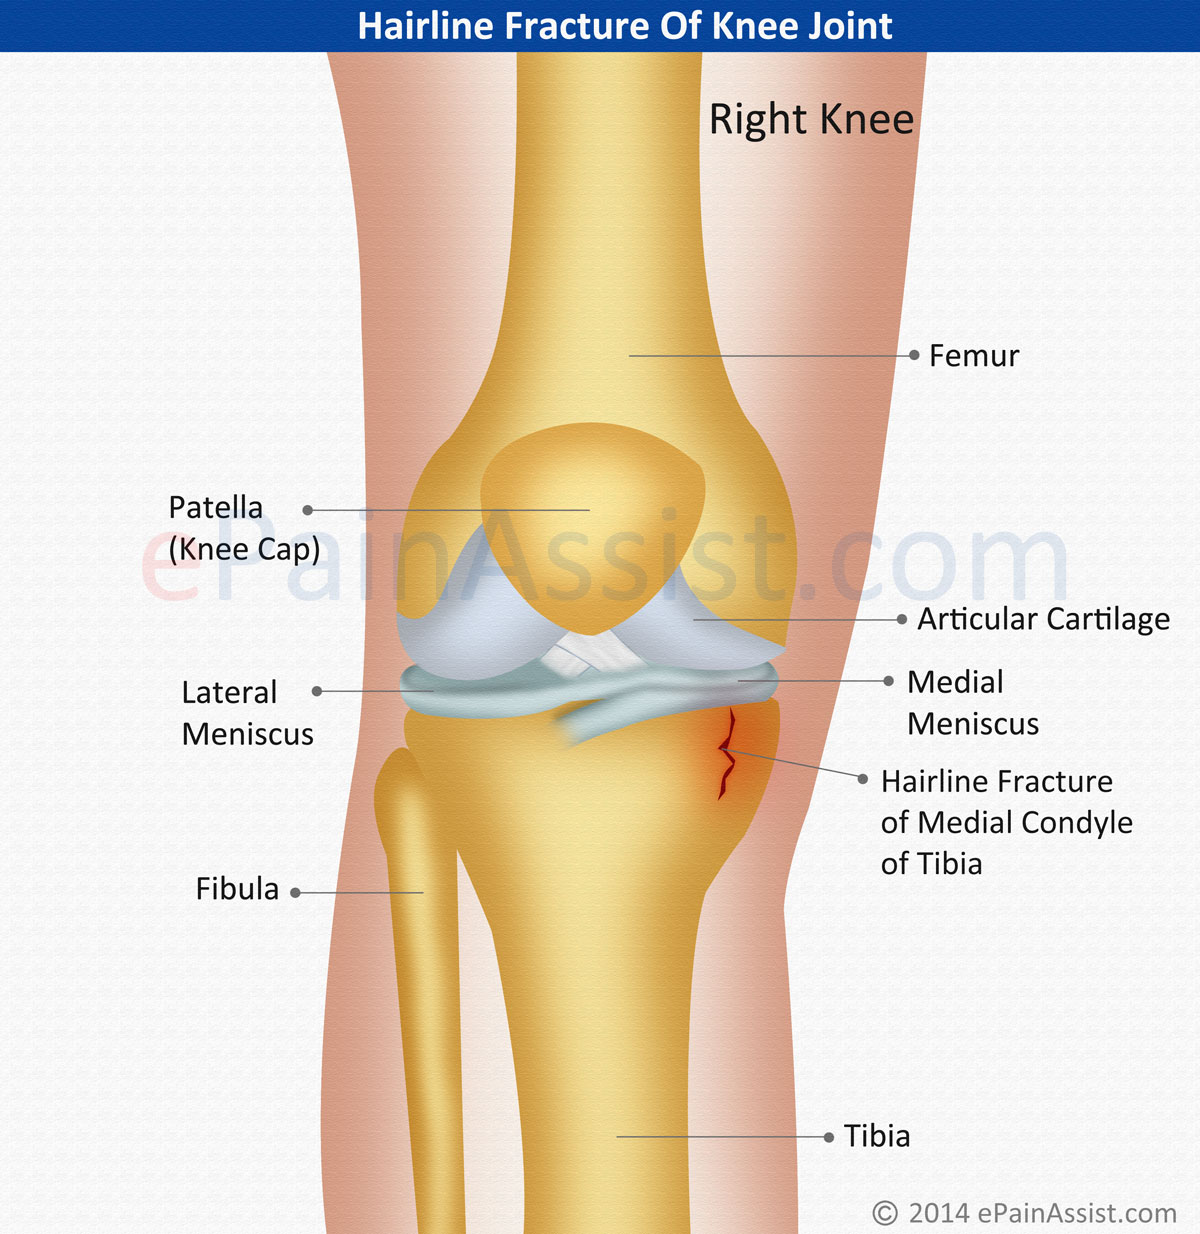 Hairline Fracture Of Knee Joint